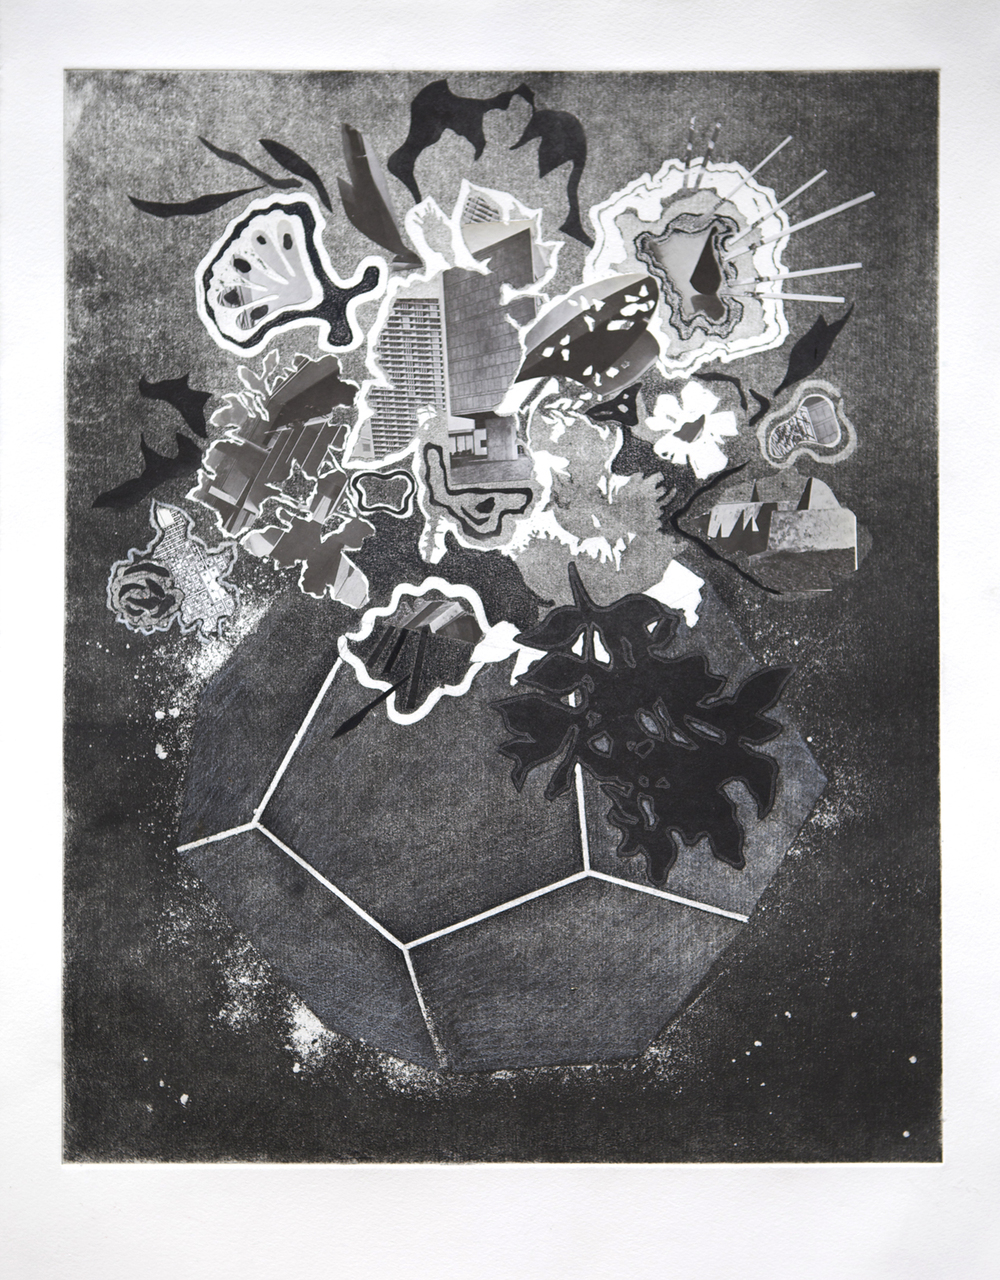 Composition #1124(2014),Intaglio, collage and wax pencil on paper,Image 15 3/4 x19 3/4 in., sheet 24 x 20 in.